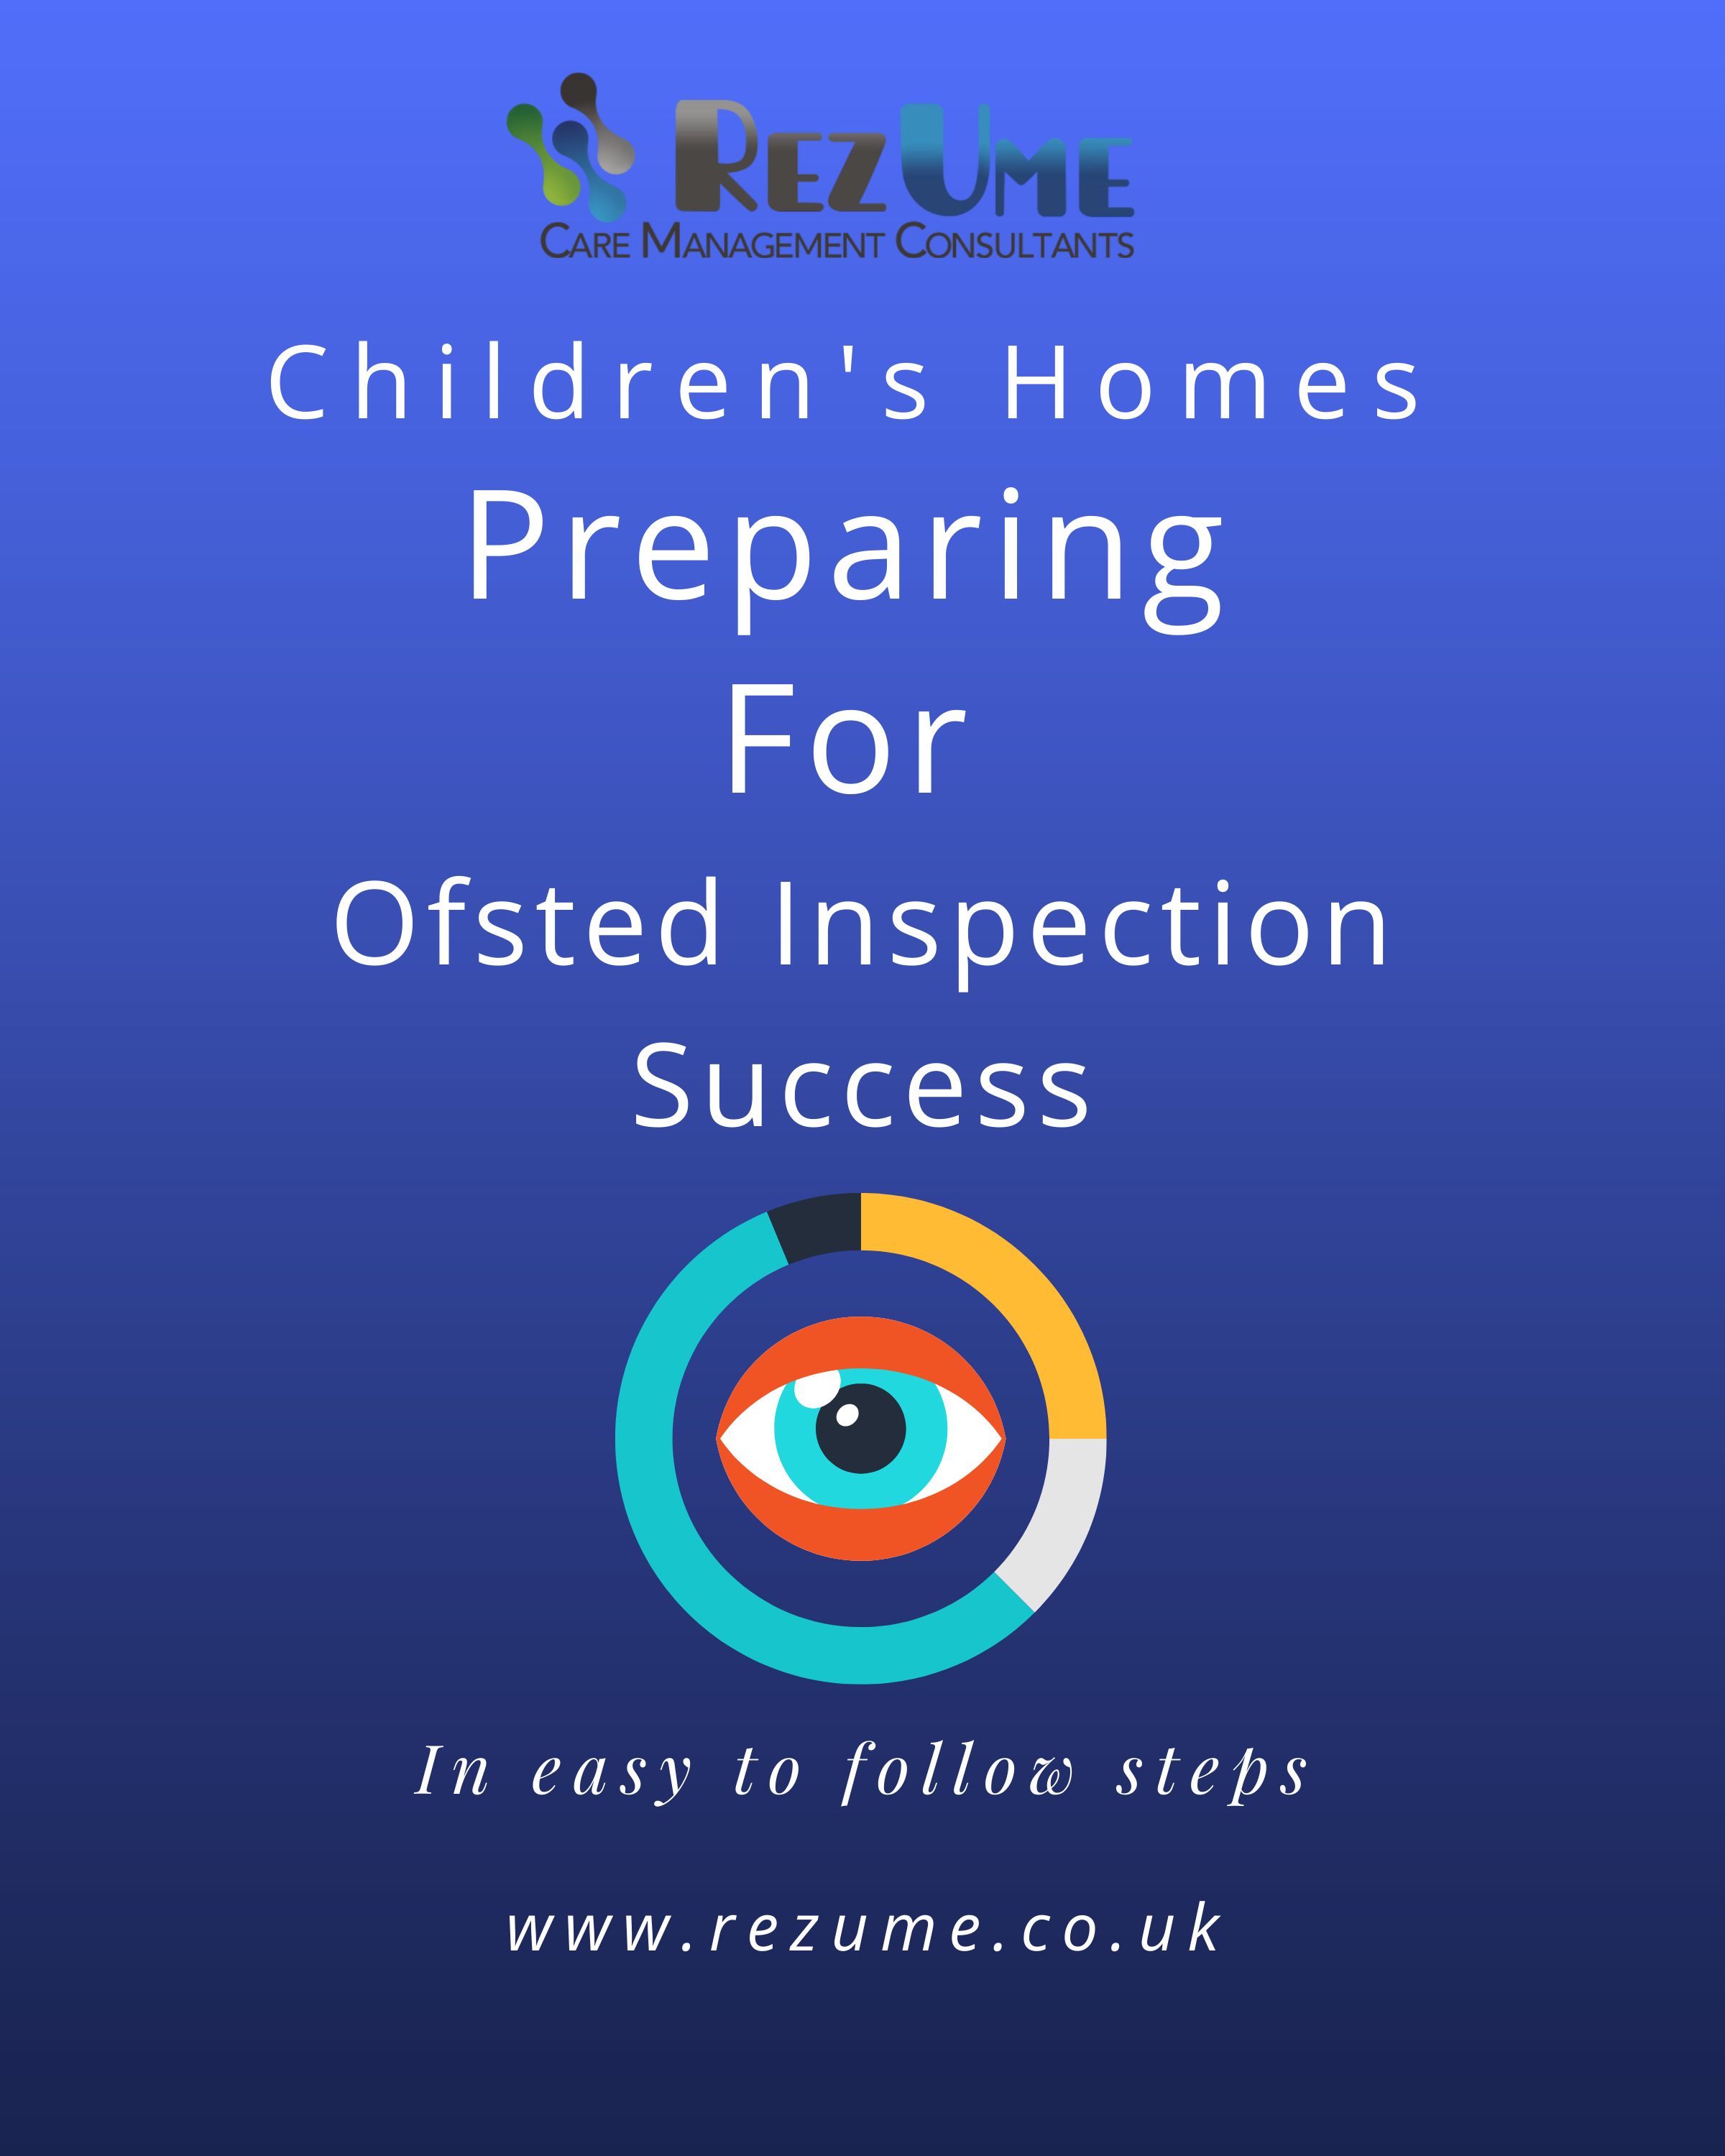 Children's homes Ofsted inspection success